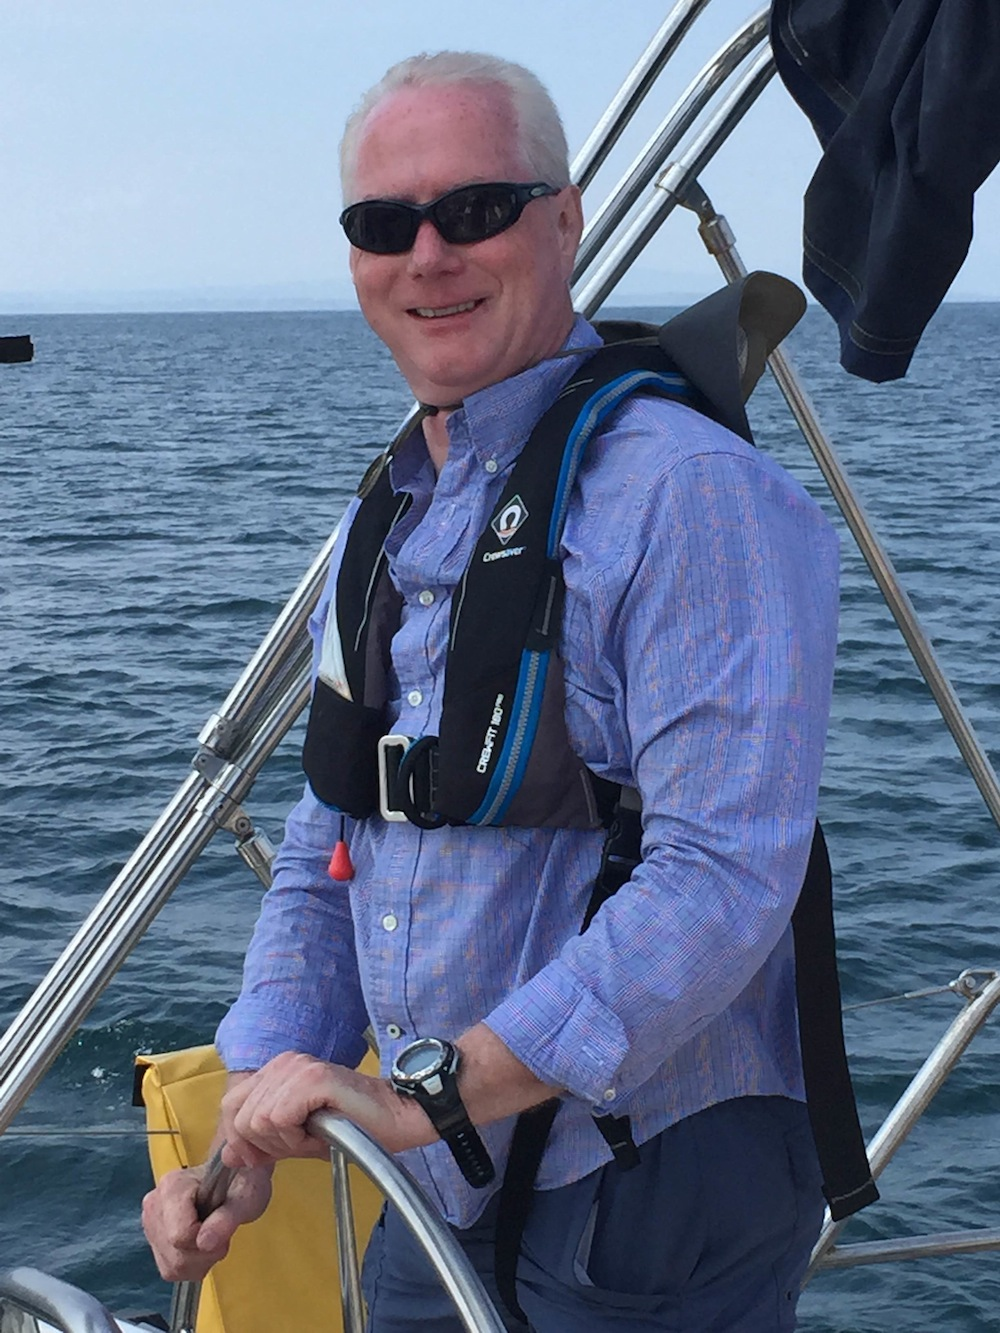 Skipper Cormac of Atlantic Way Sailing